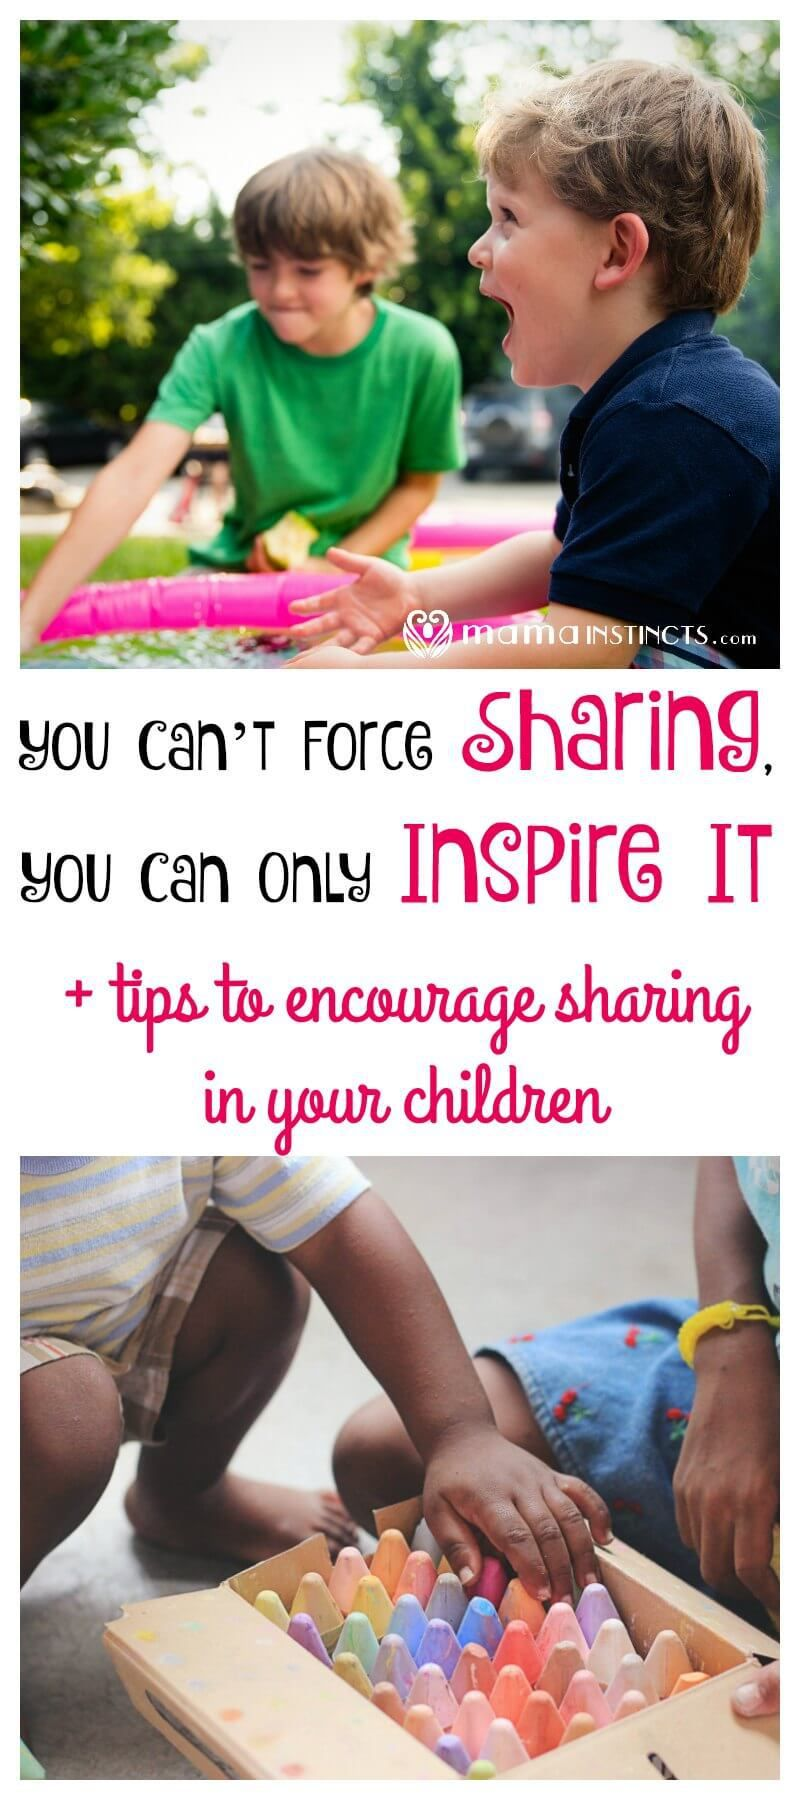 The child does not want to share: what should parents do